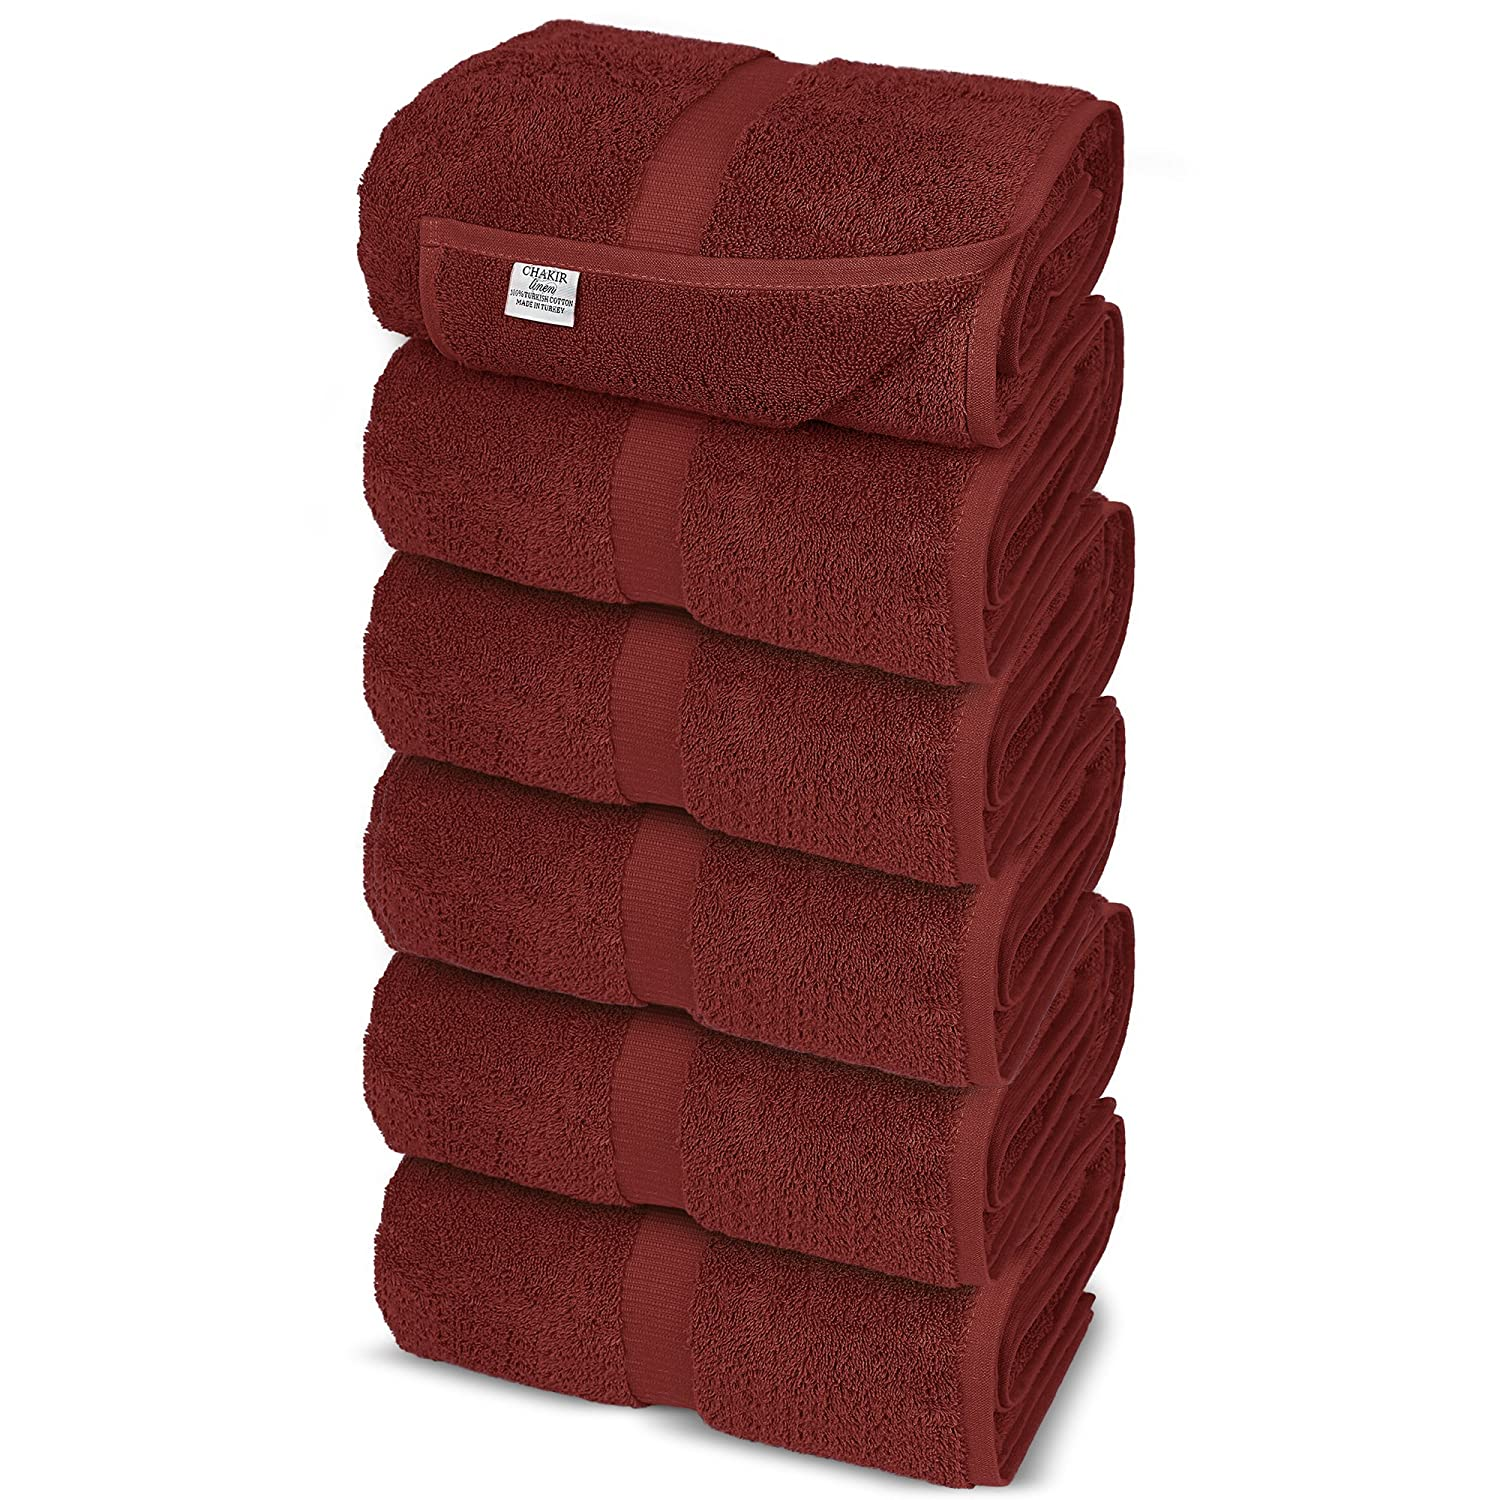 Chakir Turkish Linens Turkish Cotton Luxury Hotel & Spa Bath Towel, Hand Towel - Set of 6, Cranberry